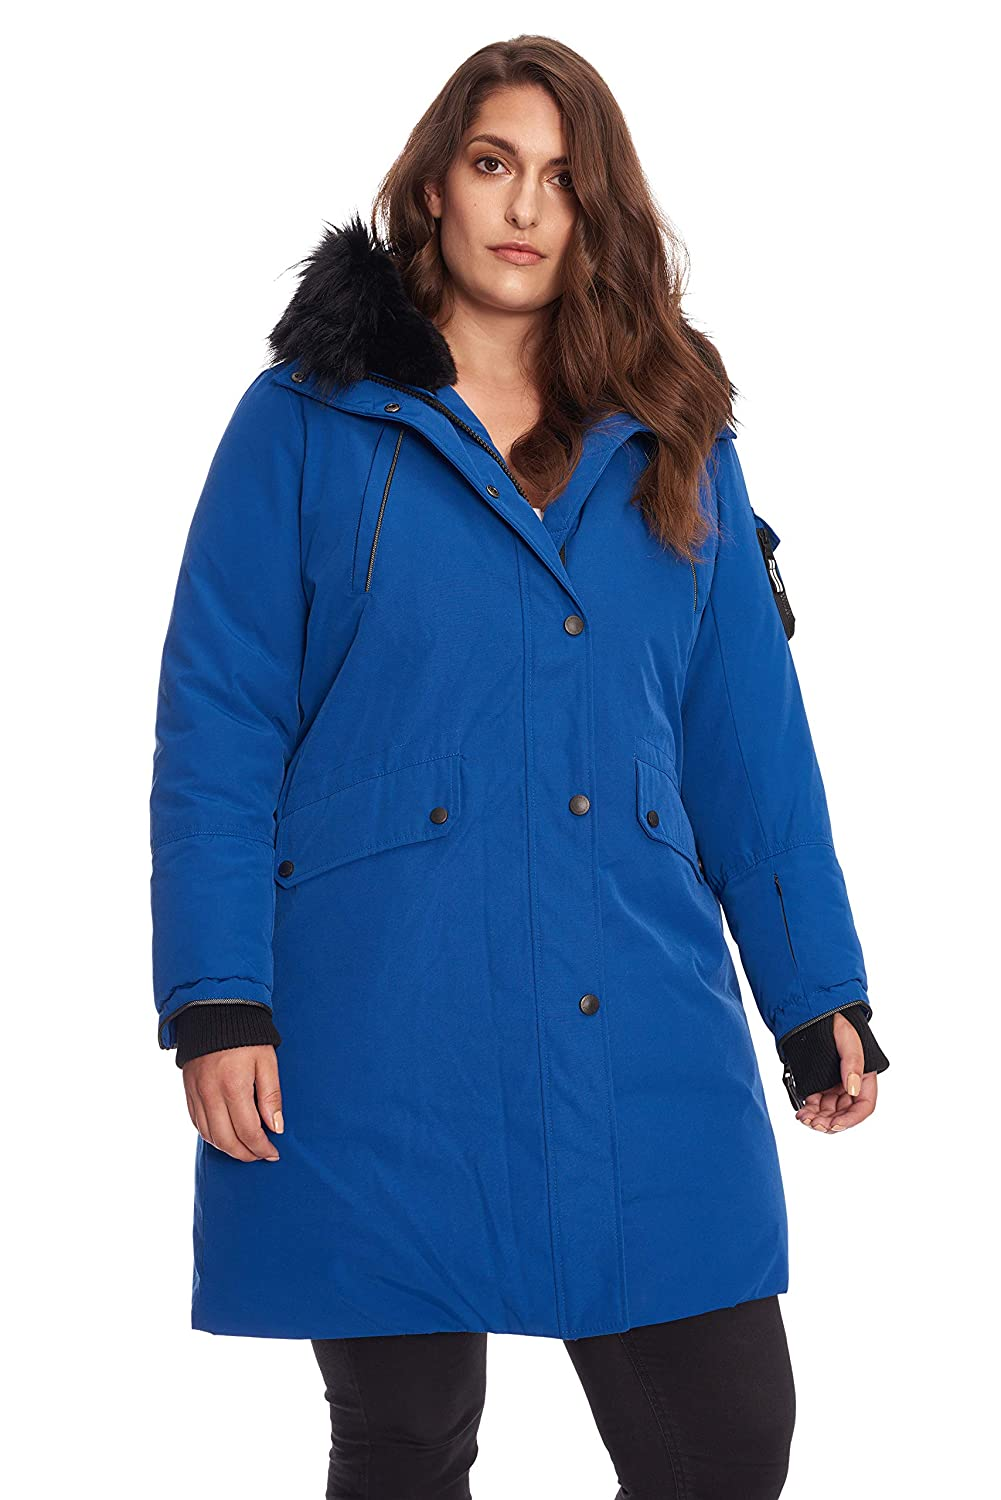 Image of Alpine North Size Womens Vegan Down Long Parka Winter Jacket Plus Down Jackets & Parkas